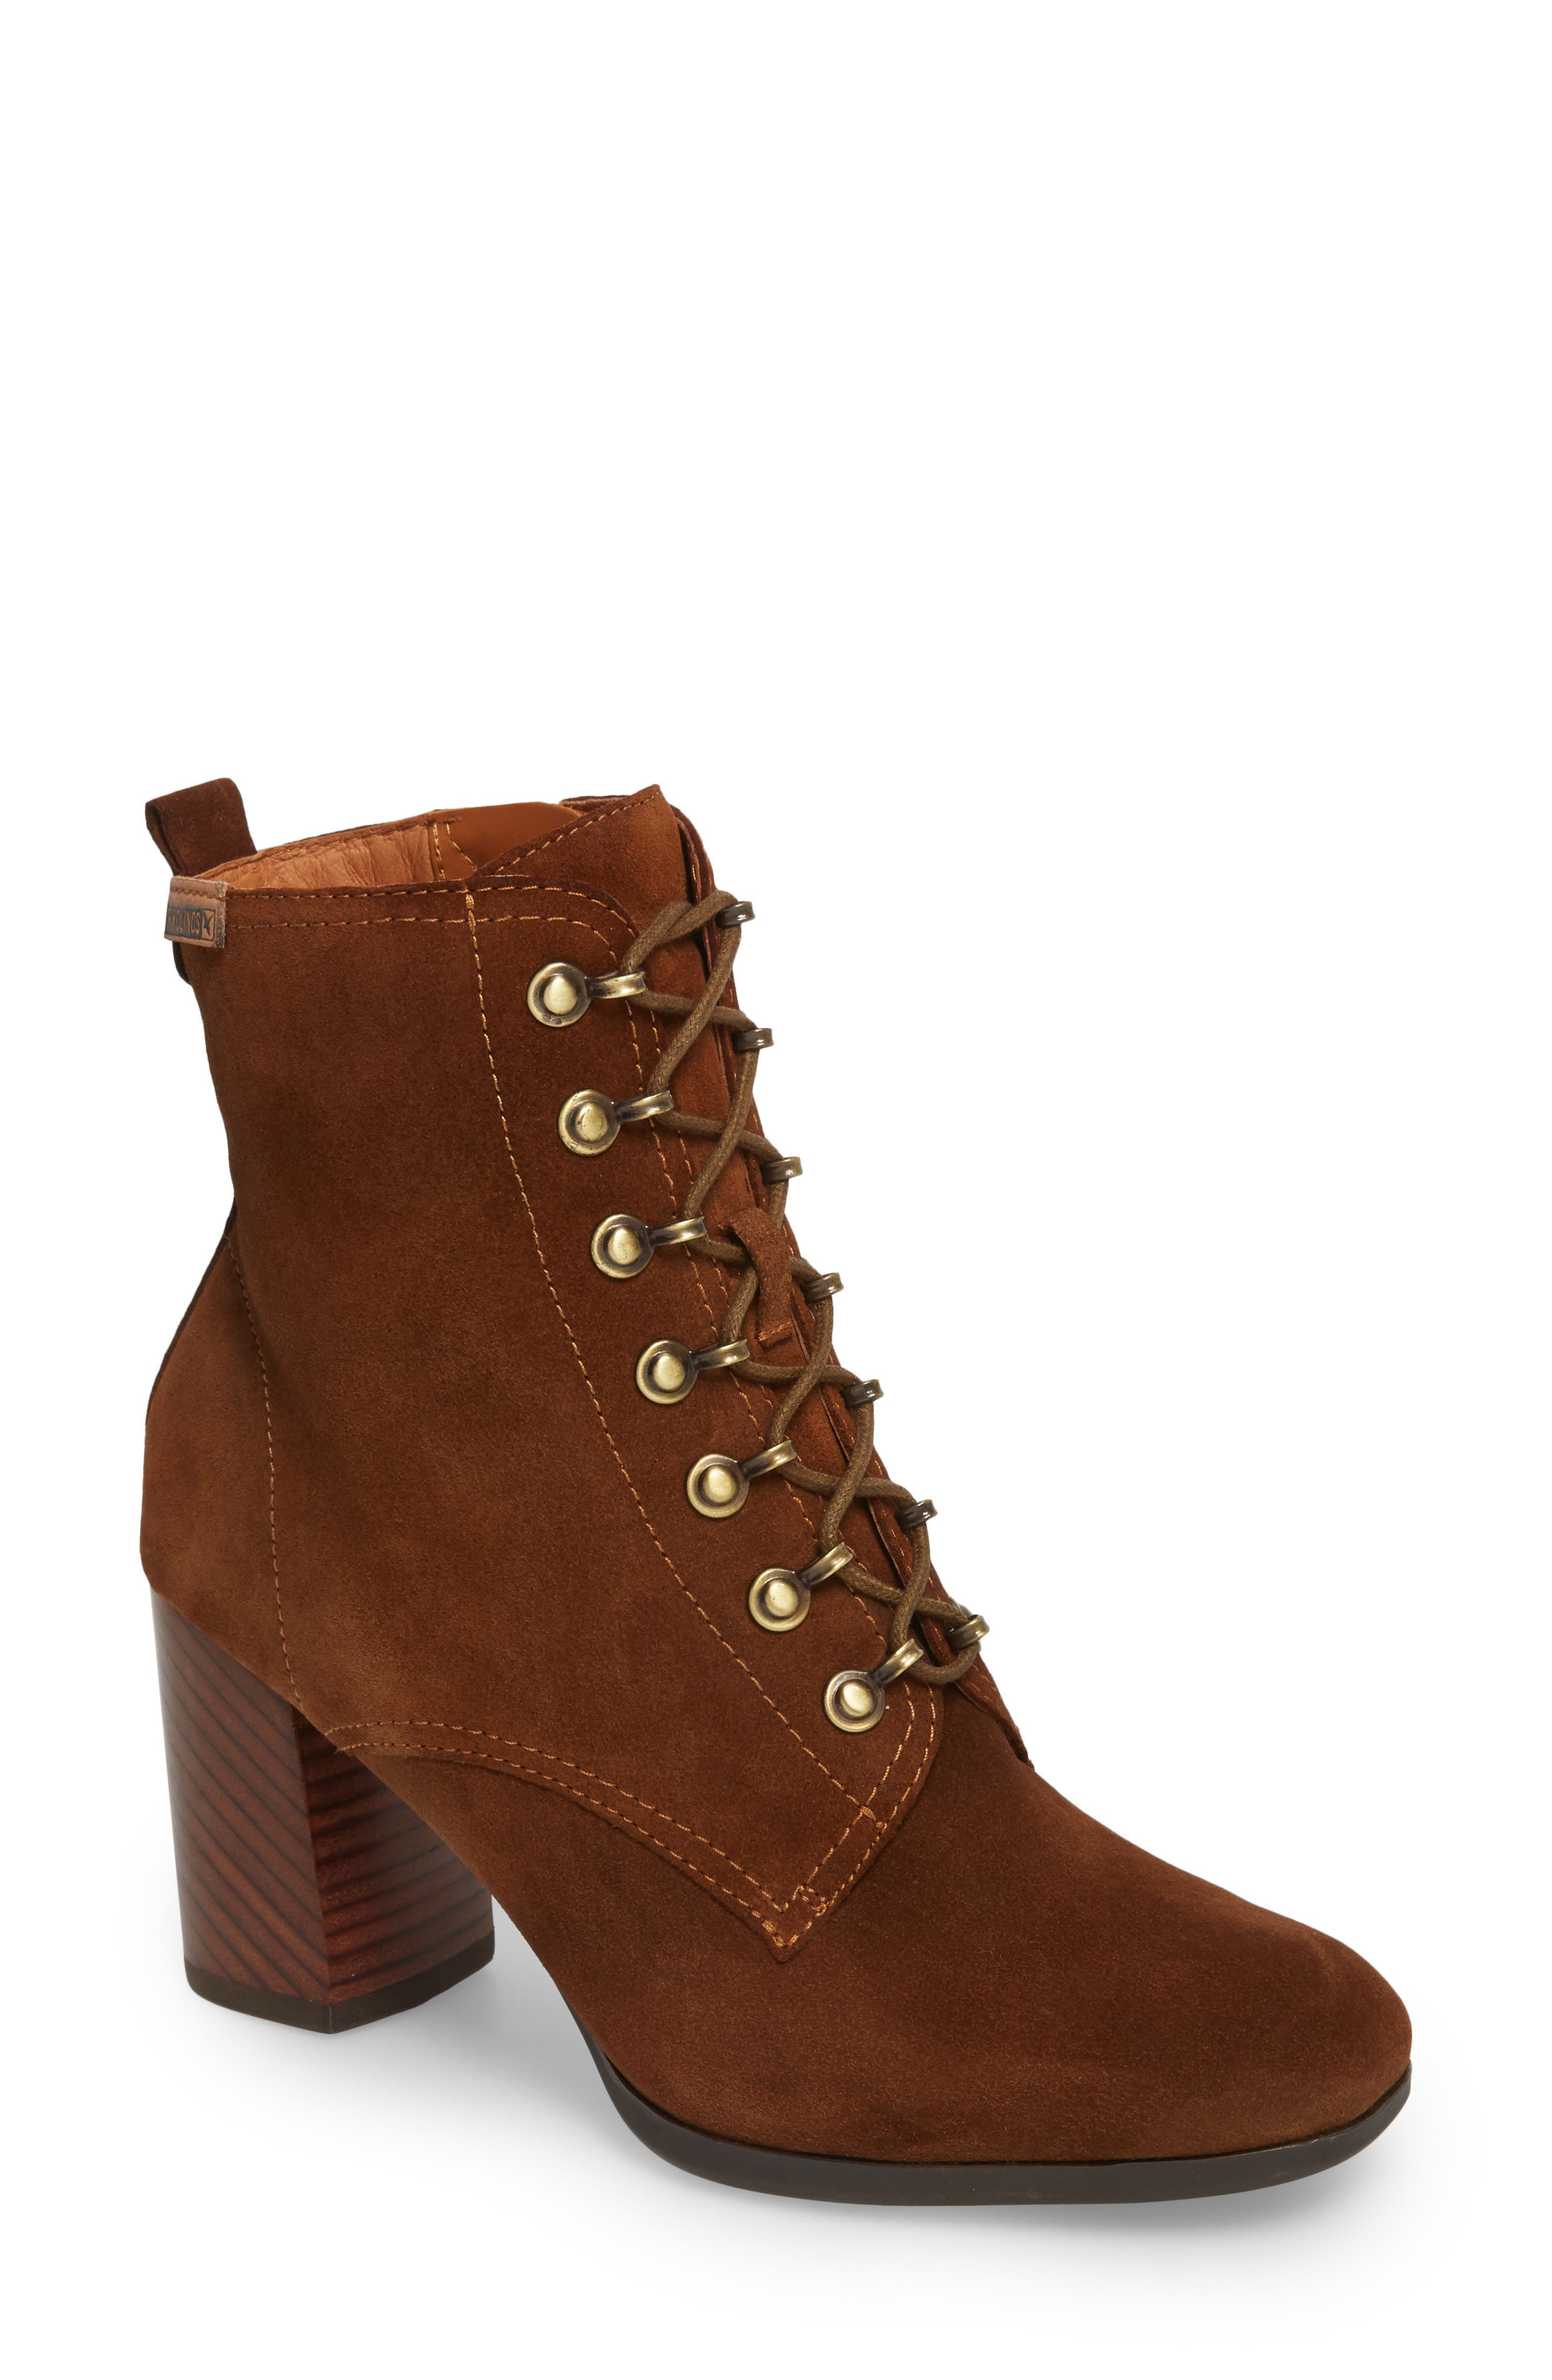 Aragon Lace-Up Boot,                             Main thumbnail 1, color,                             Brandy Leather